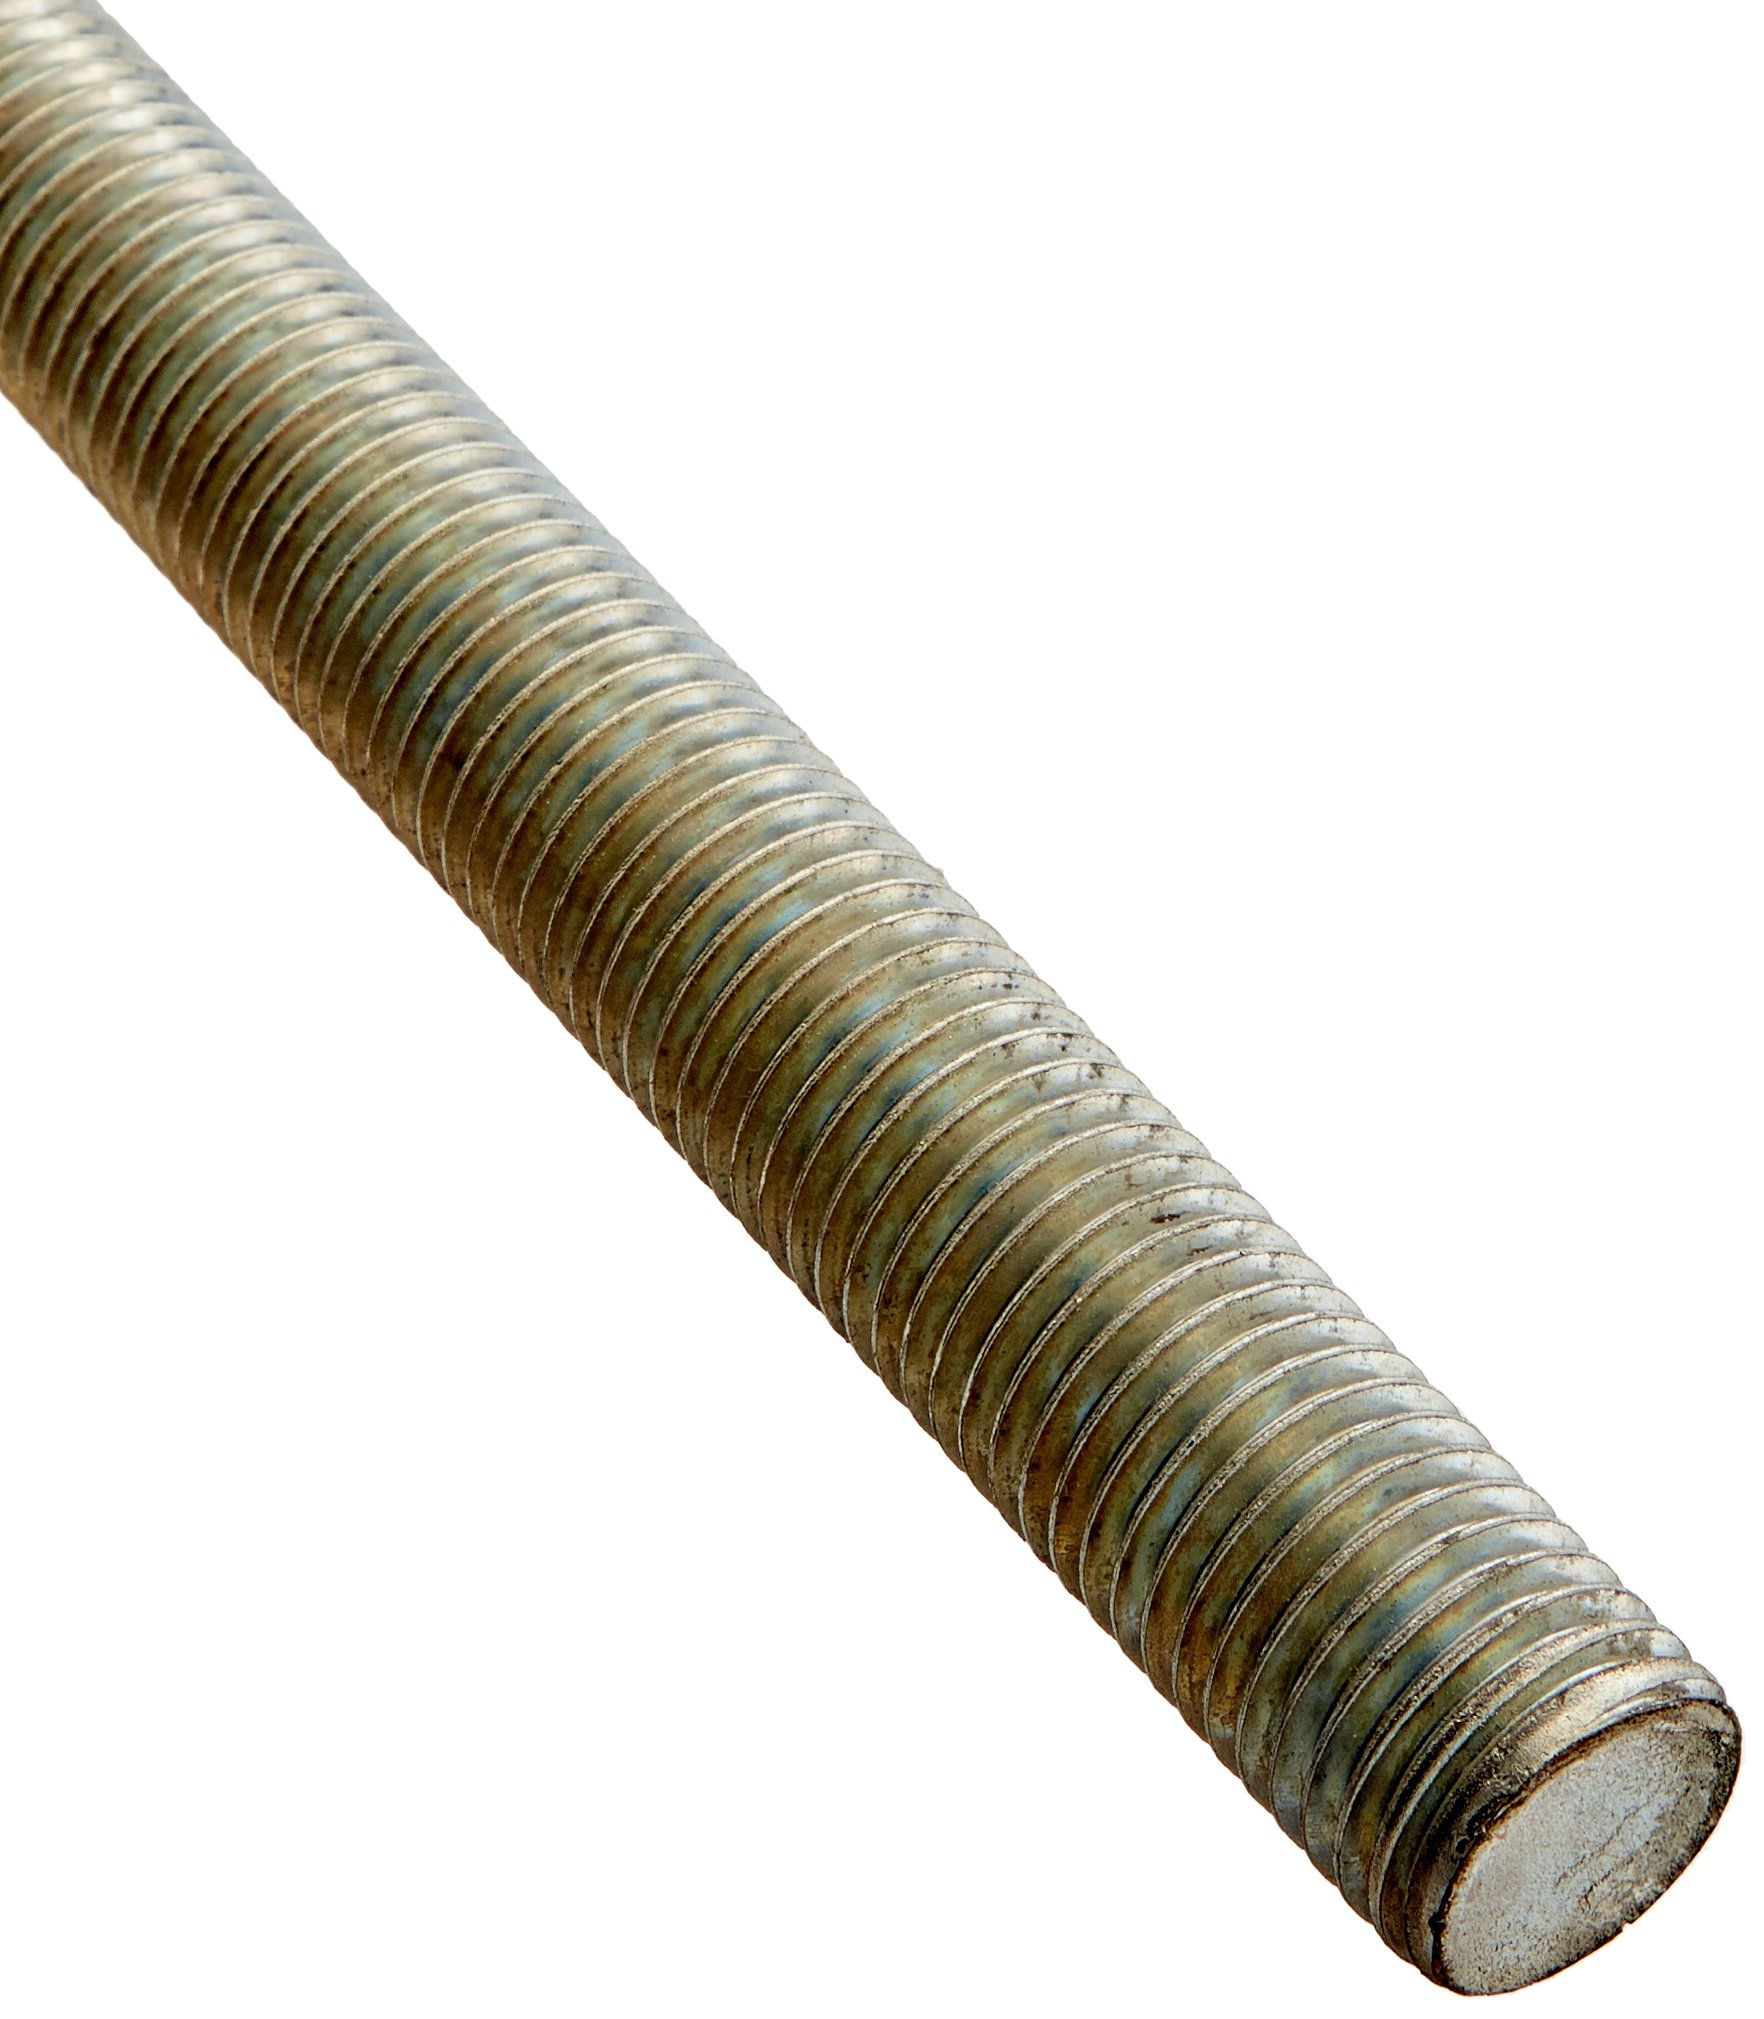 Steel Fully Threaded Rod, Zinc Plated, 7/8''-9 Thread Size, 36'' Length, Right Hand Threads, Made in US